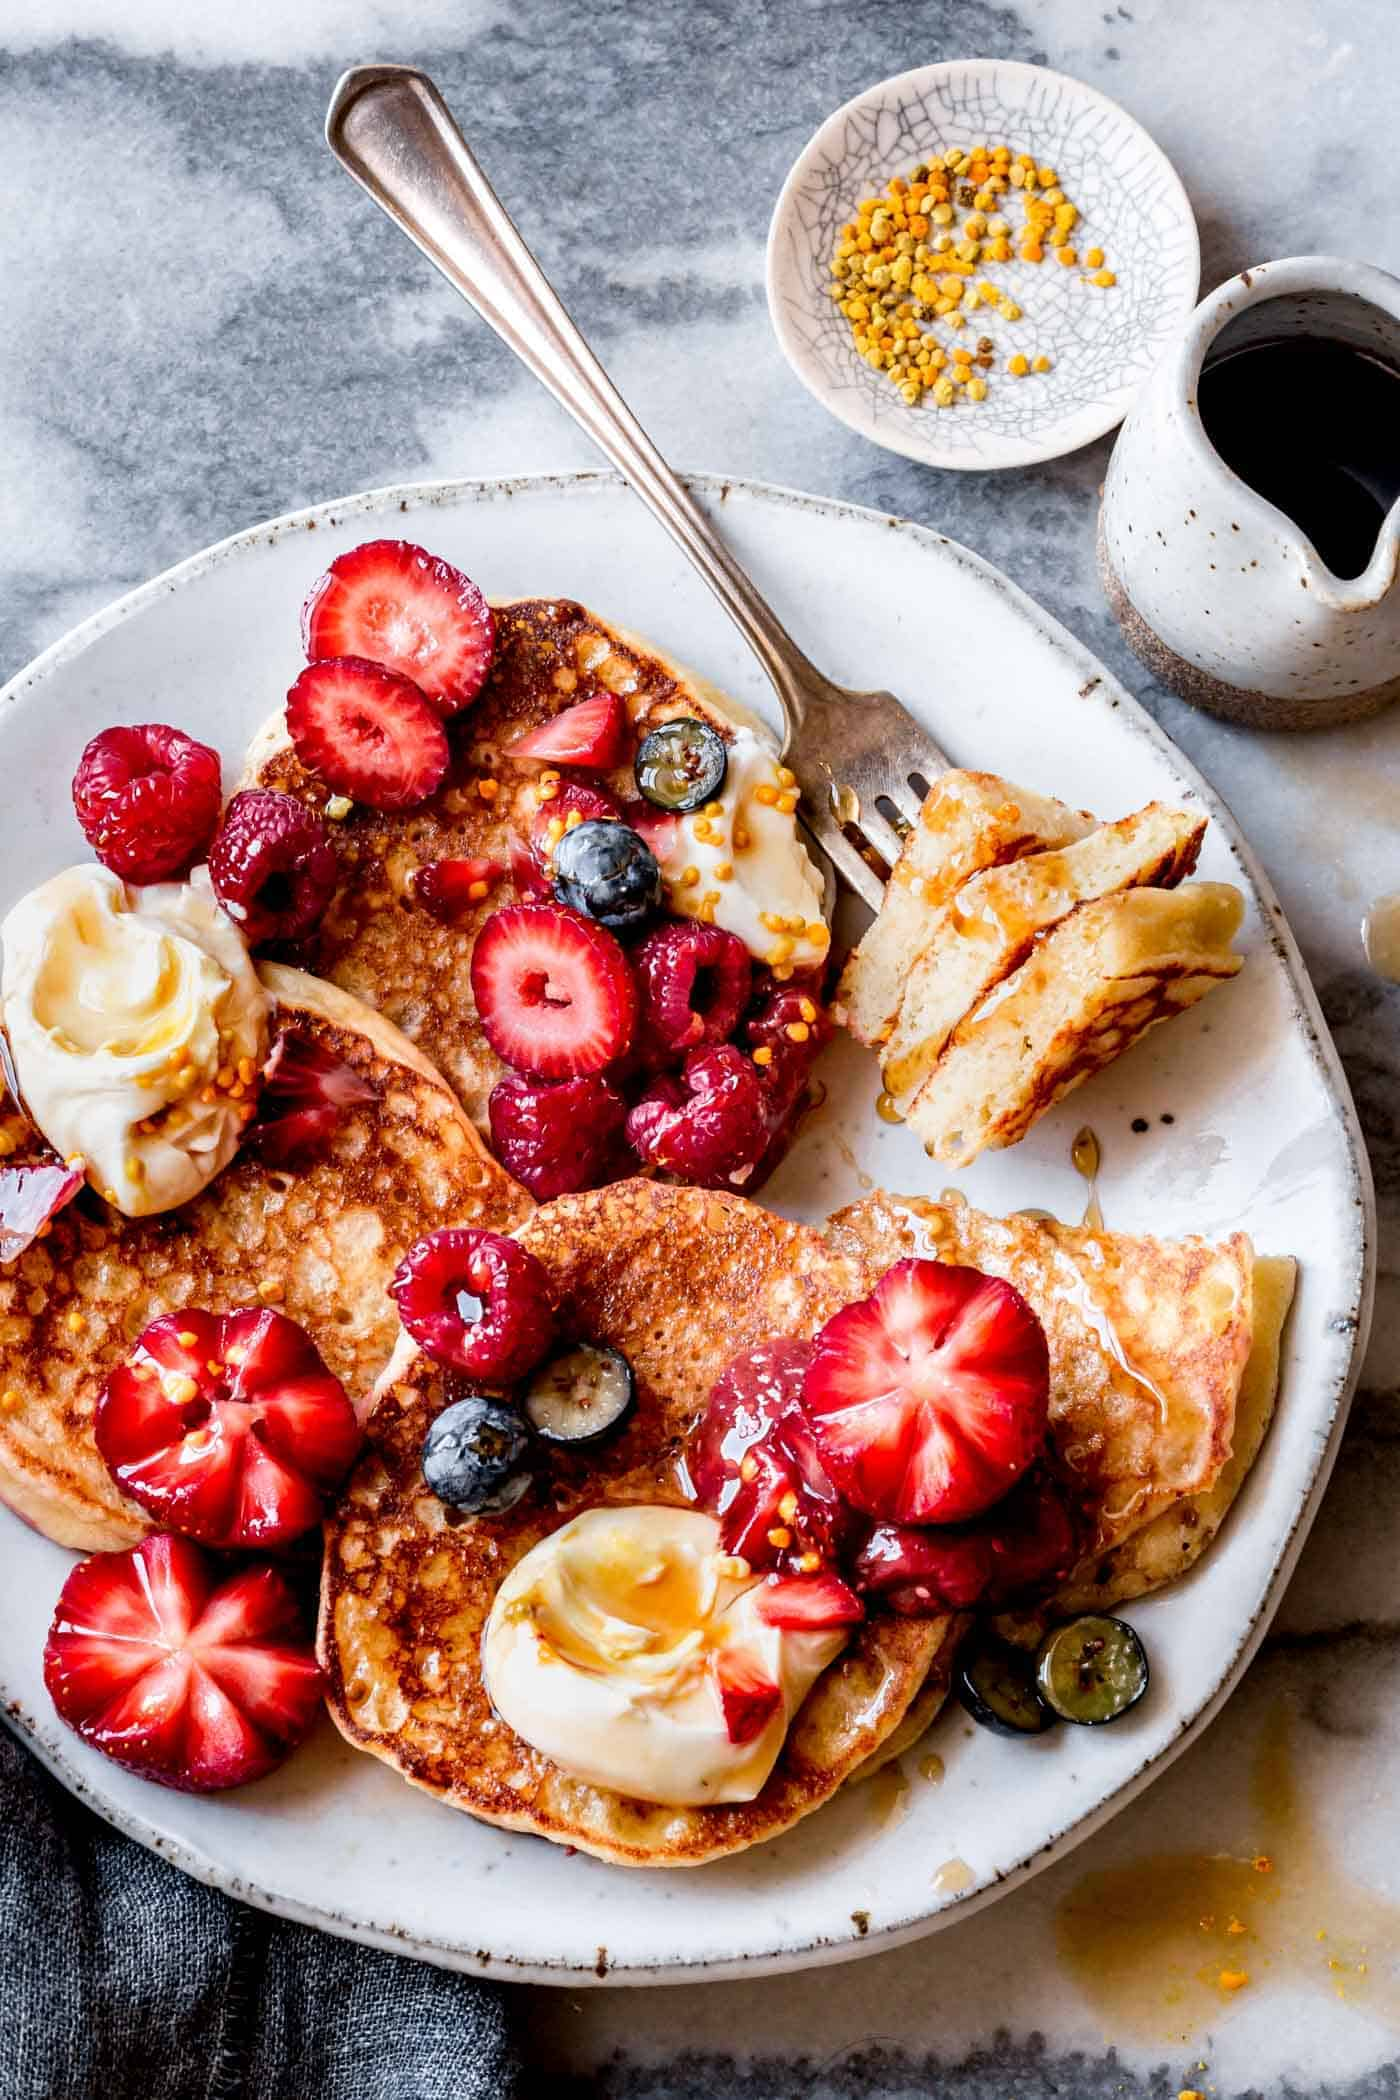 gluten-free lemon ricotta pancakes recipe on a plate with berries and syrup